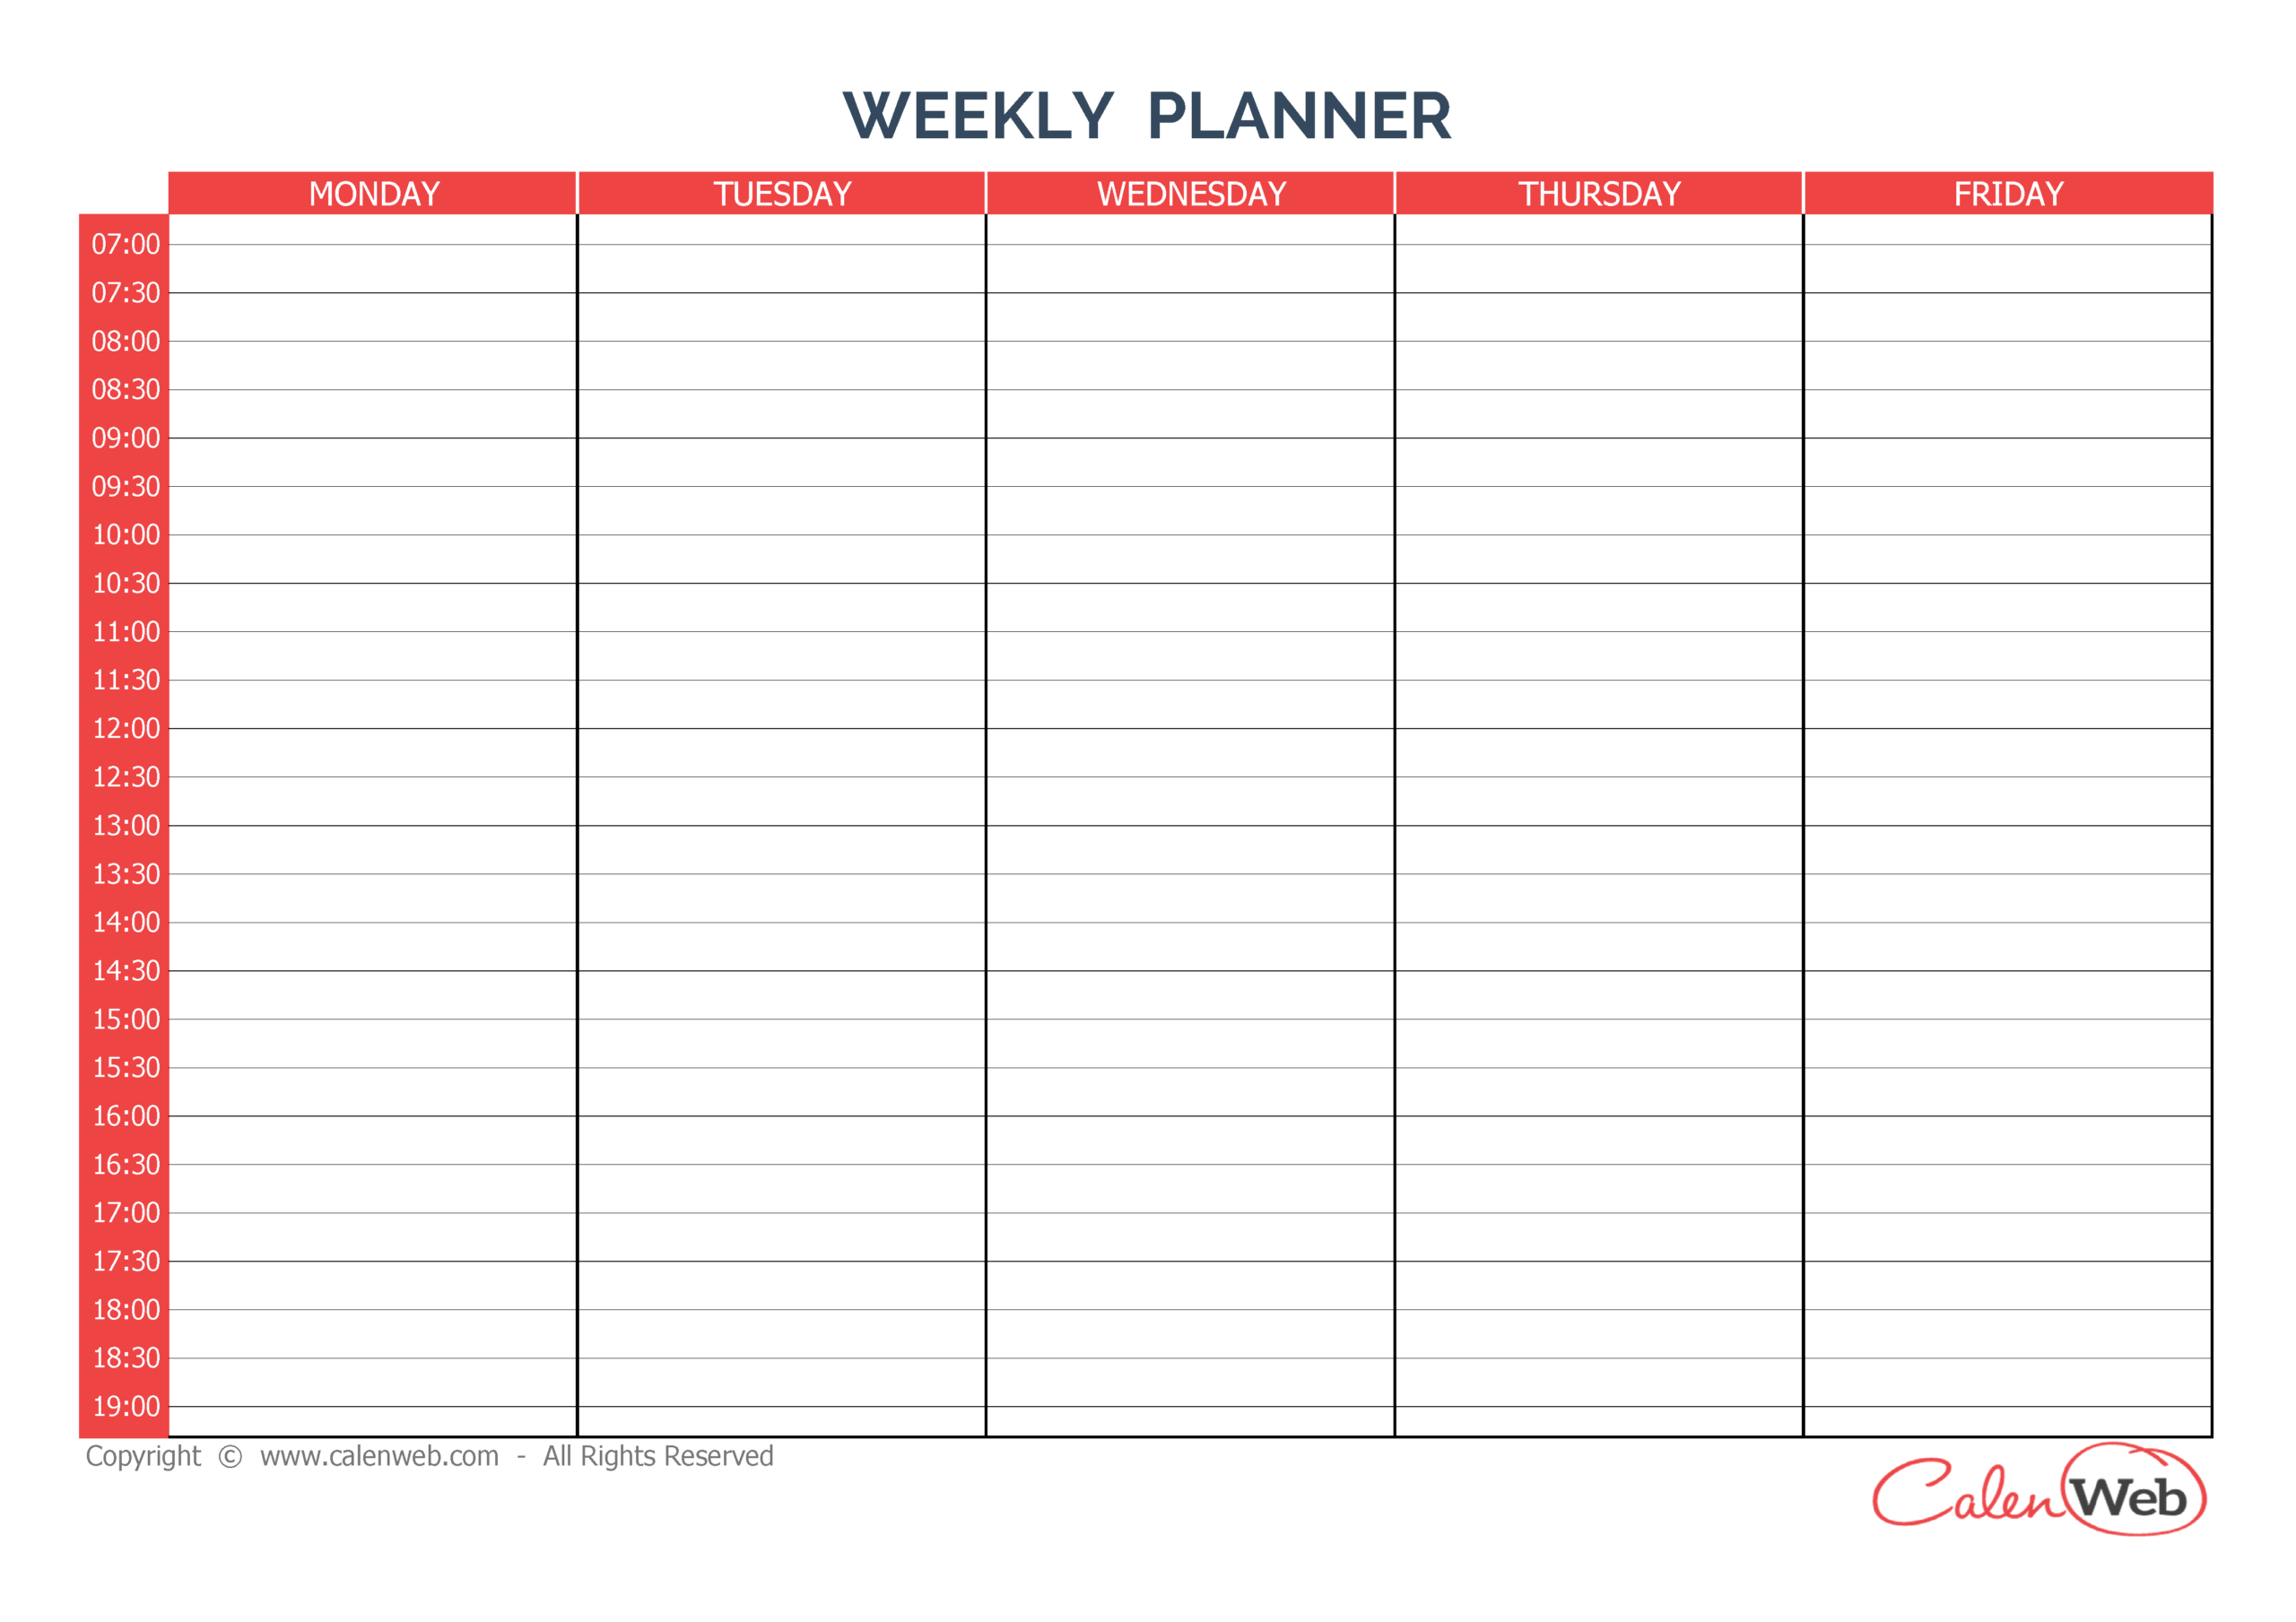 Weekly Planner 5 Days A Week Of 5 Days  Calenweb in Blank 5 Day Calendar